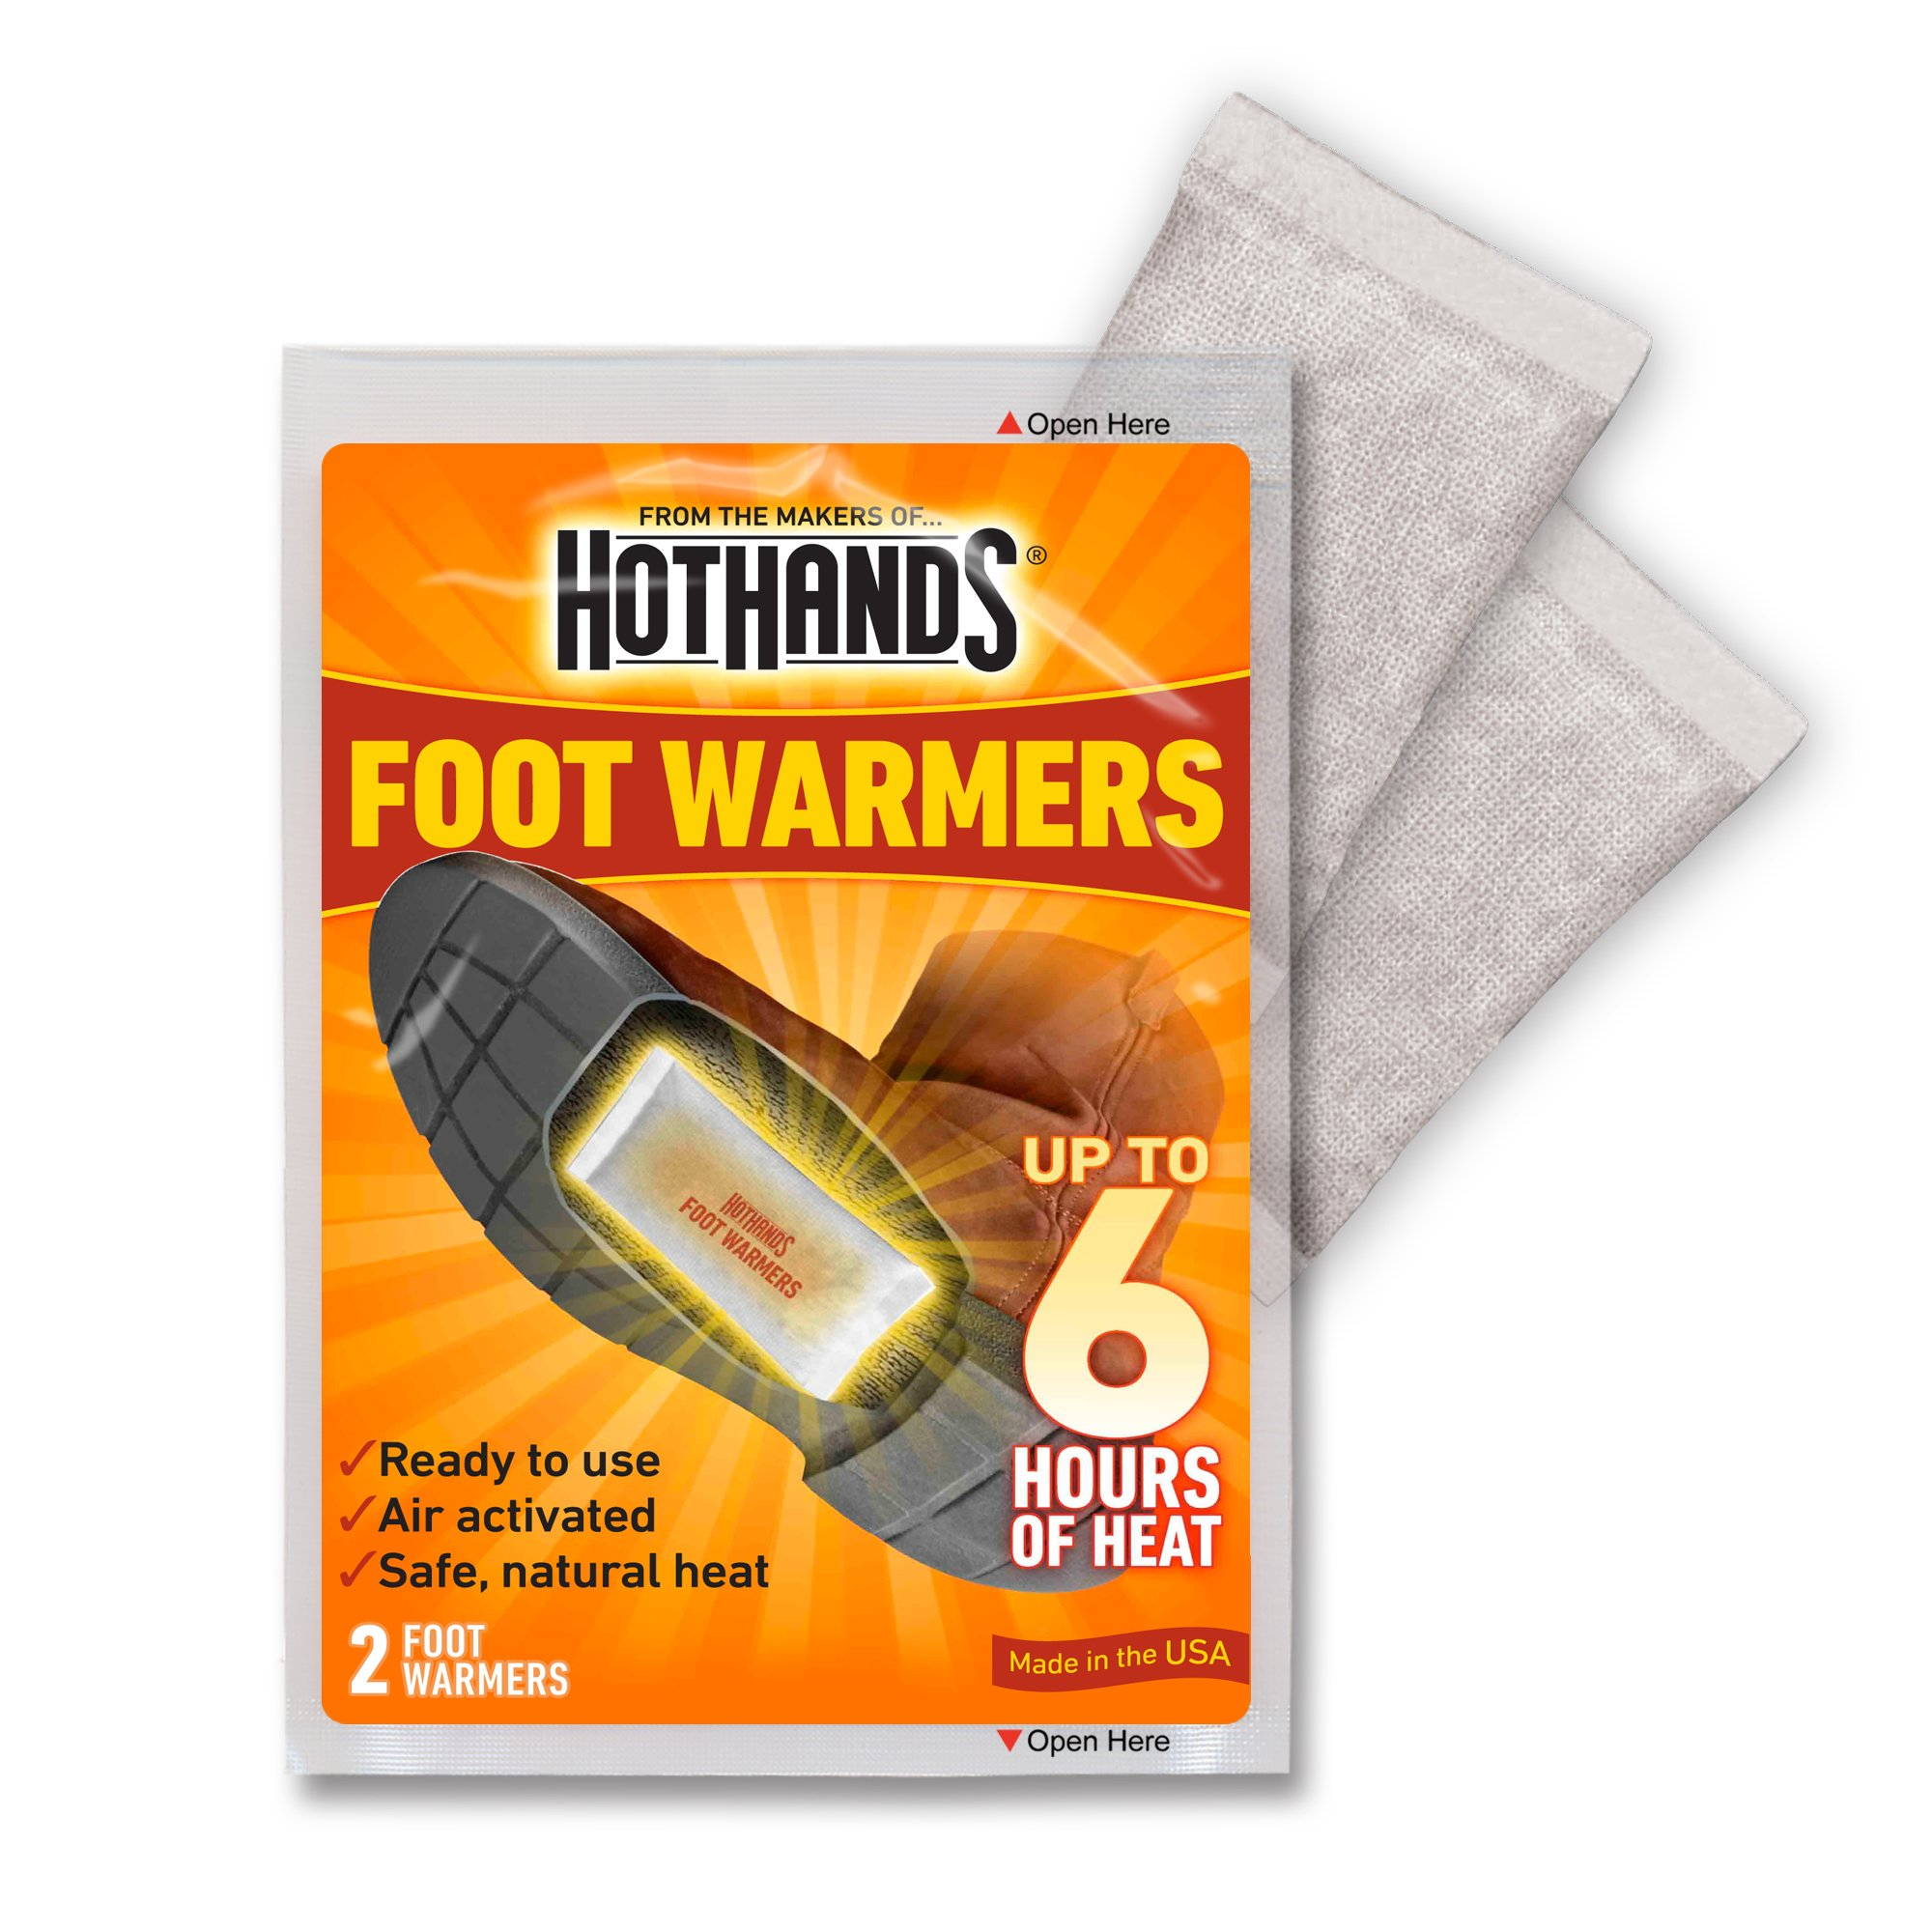 HotHands Foot Warmers - Long Lasting Safe Natural Odorless Air Activated Warmers - Up to 6 Hours of Heat - 40 Pair by HotHands (Image #3)